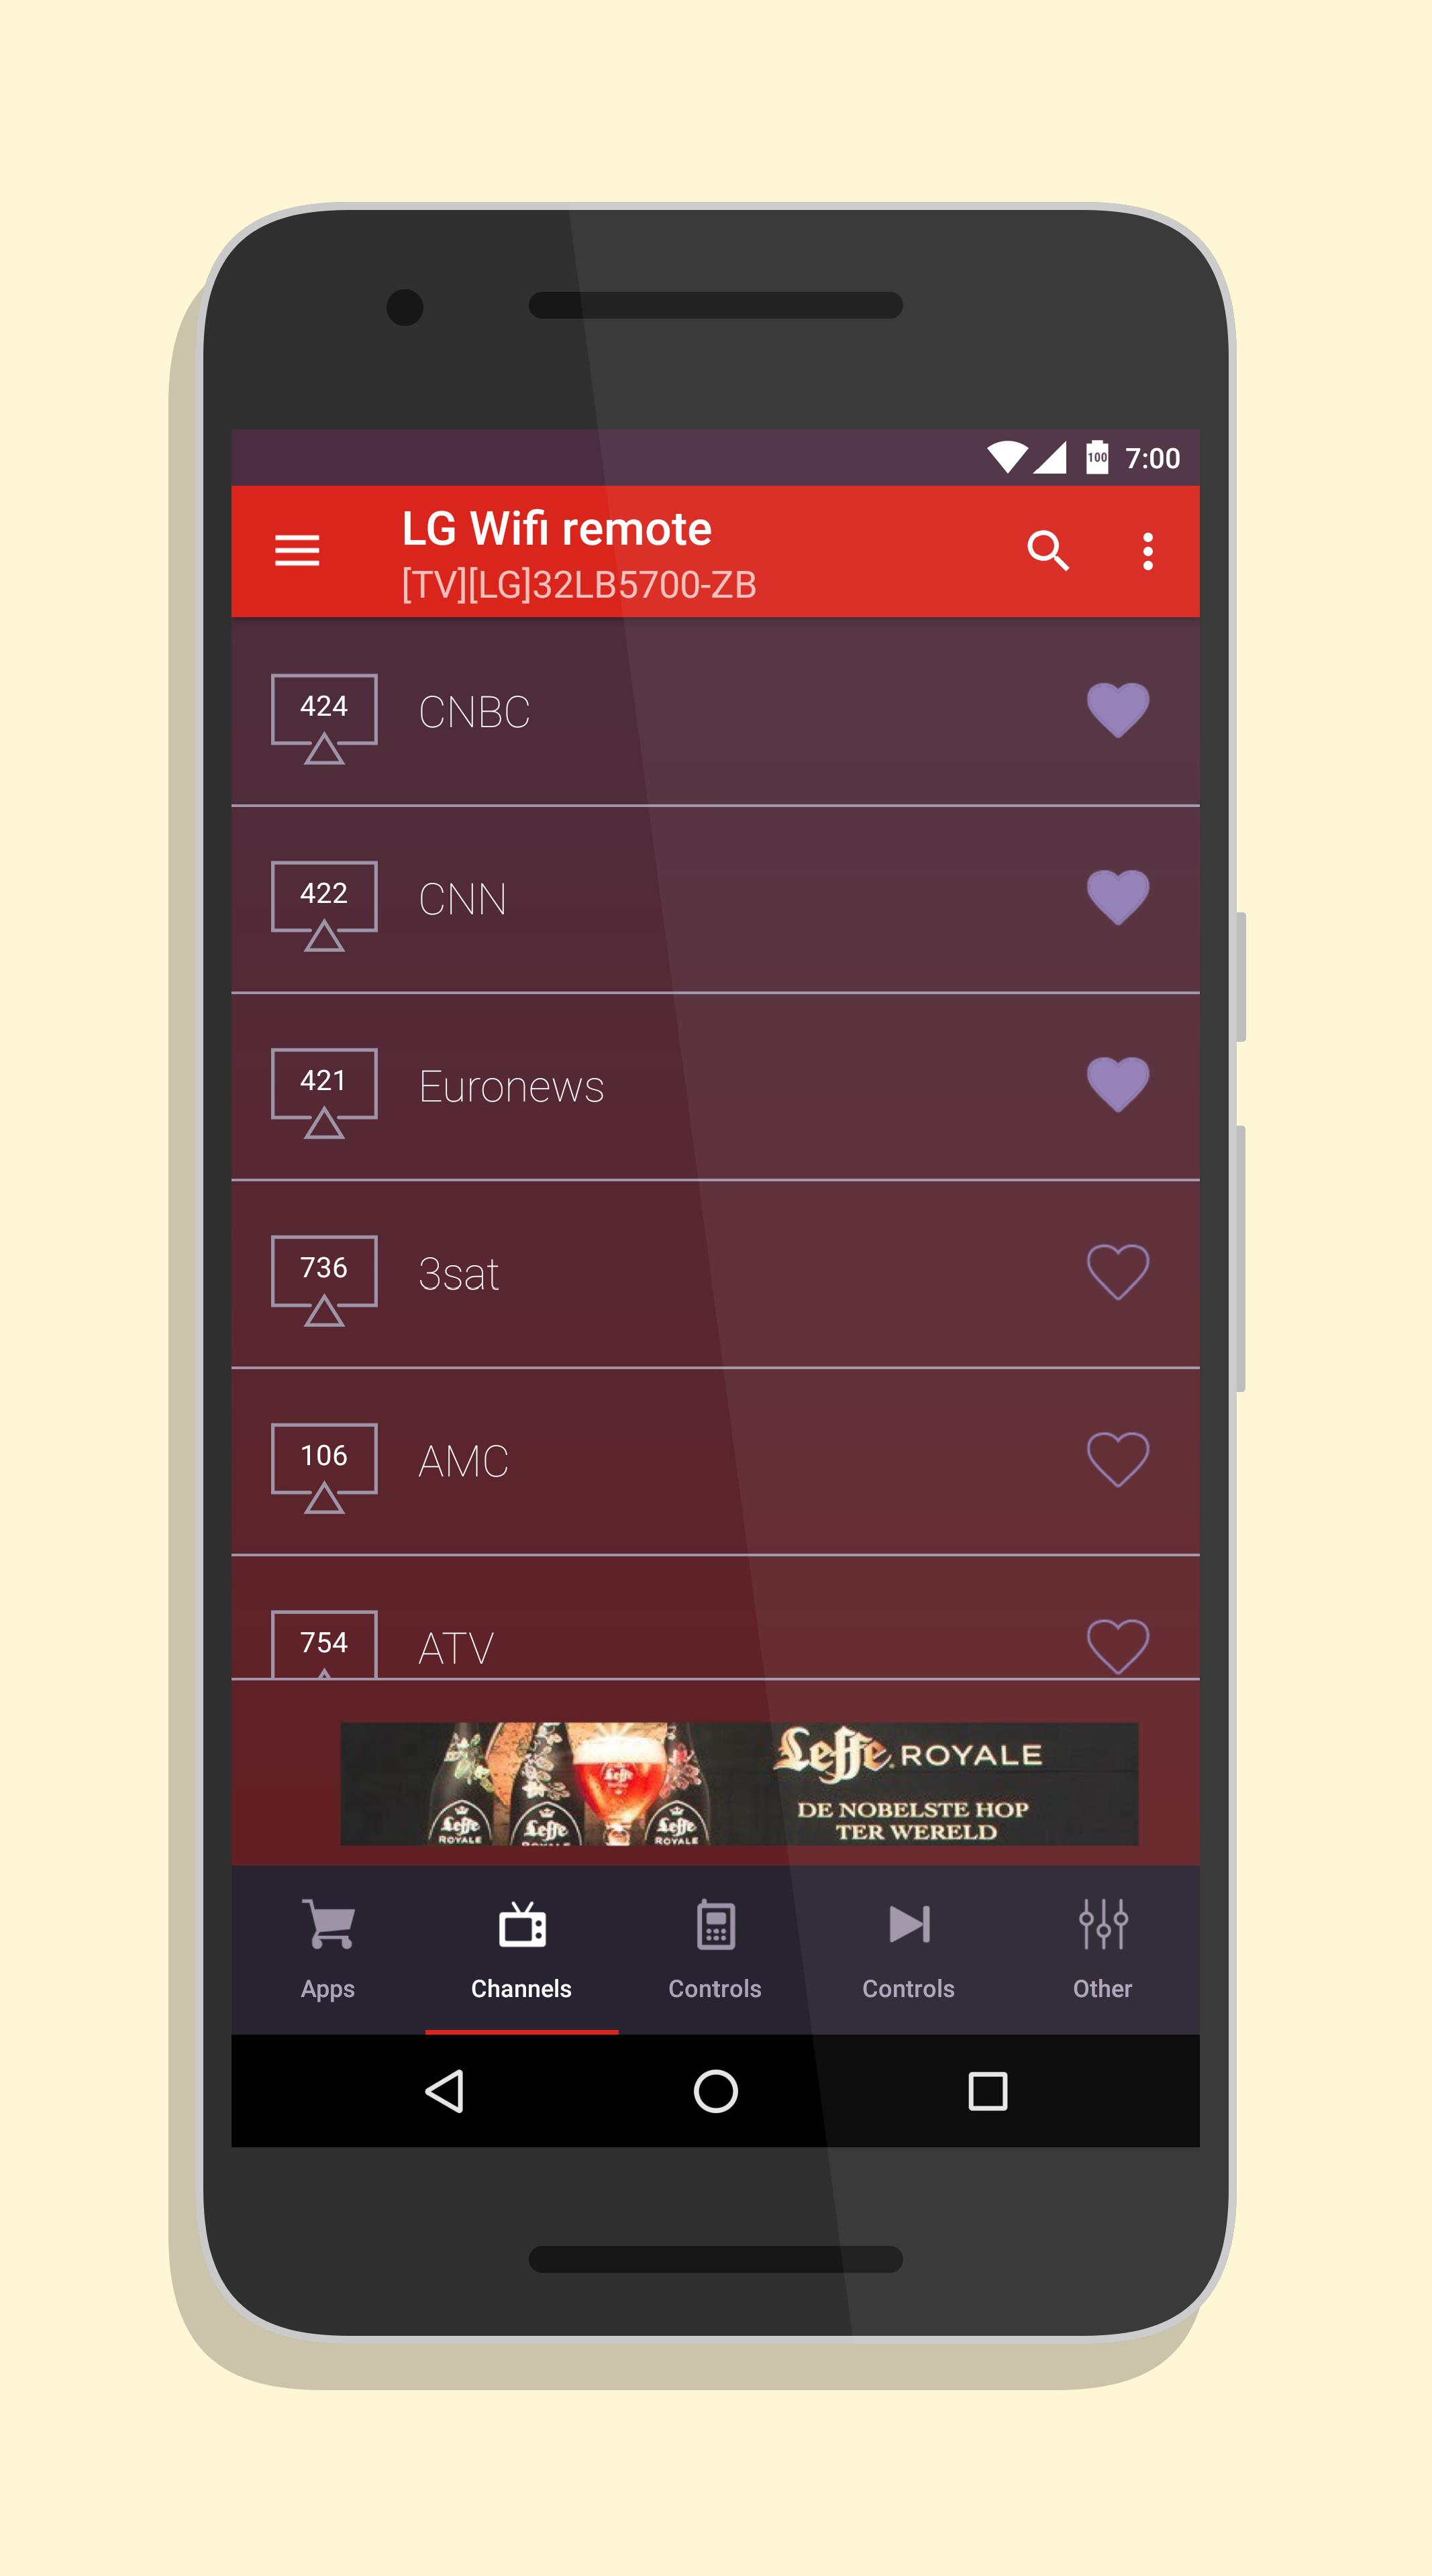 Smart TV Remote PRO for LG for Android - APK Download